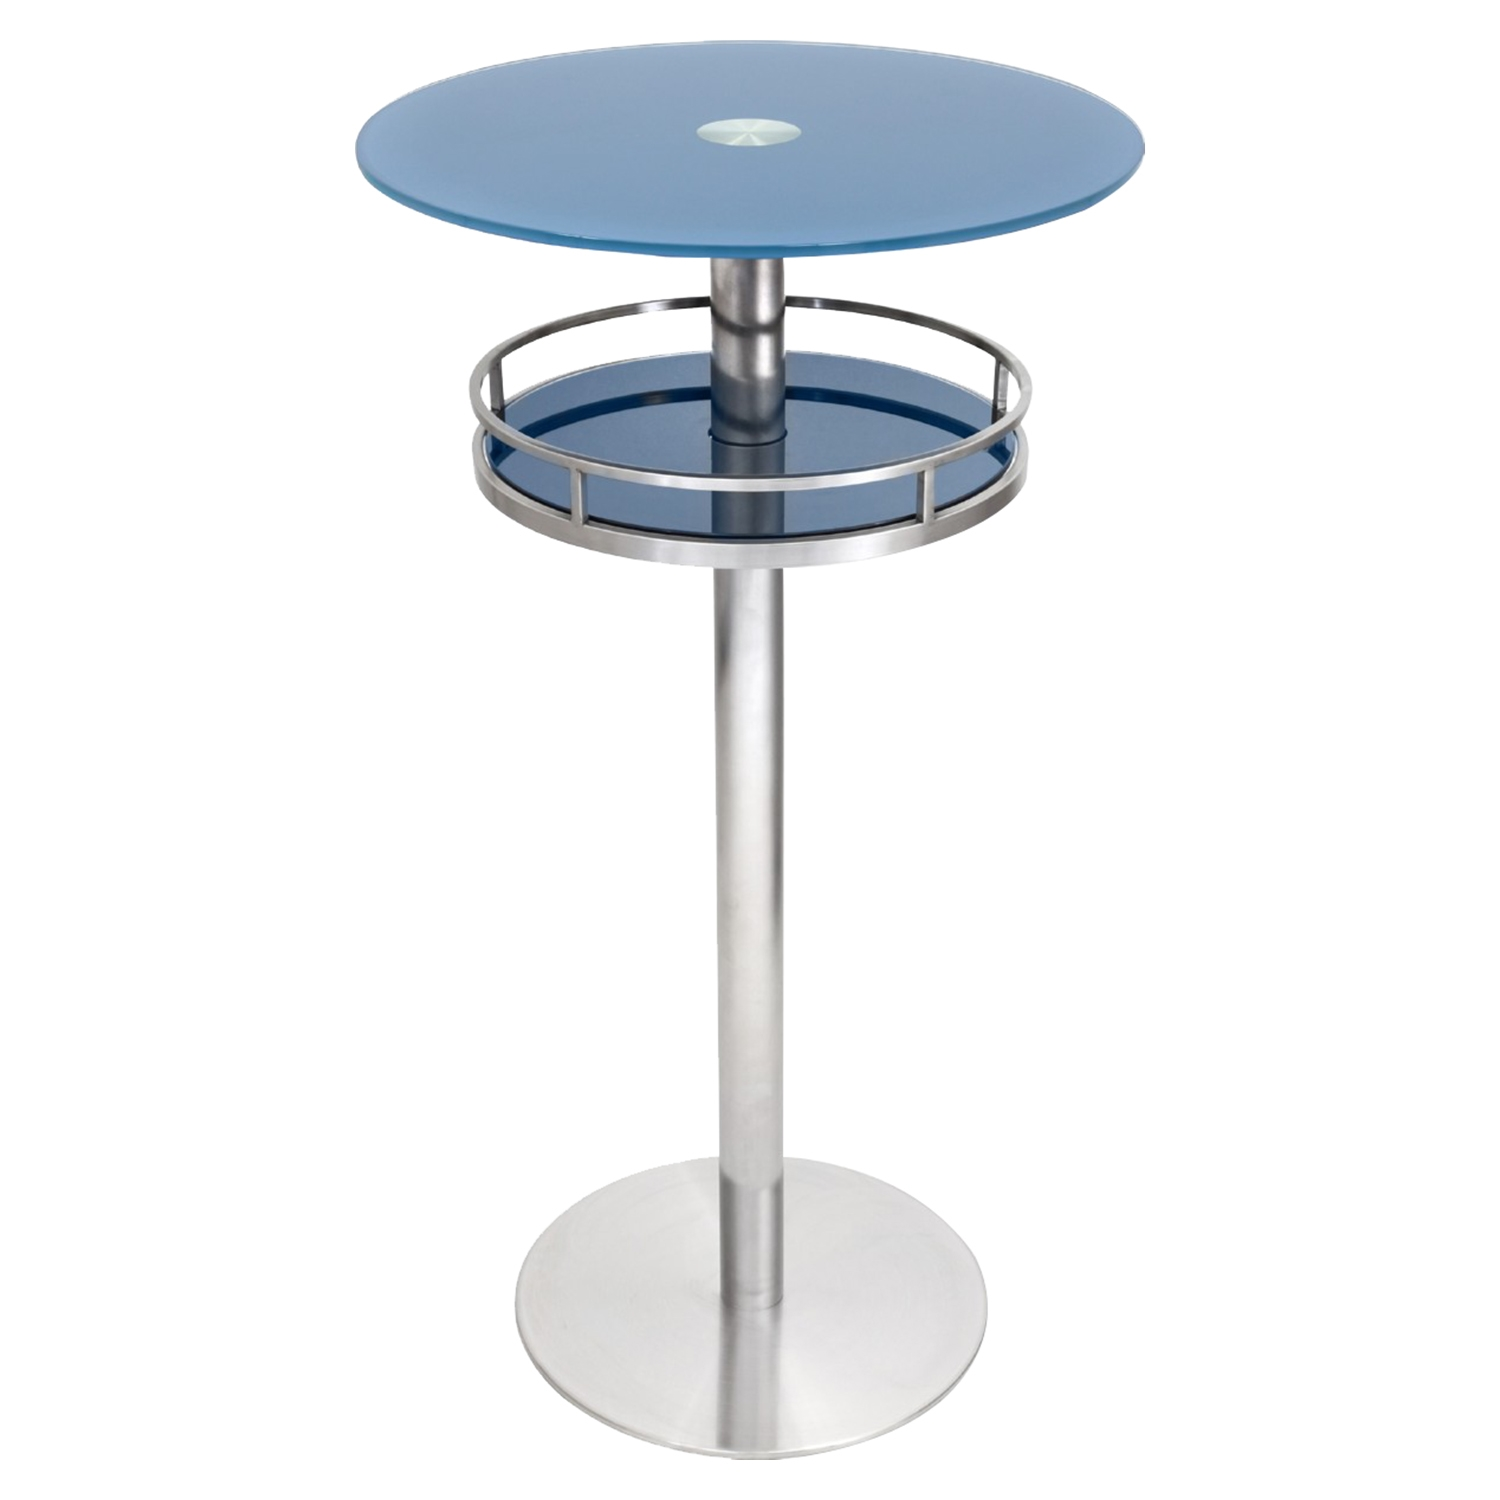 Cora Bar Table - Blue